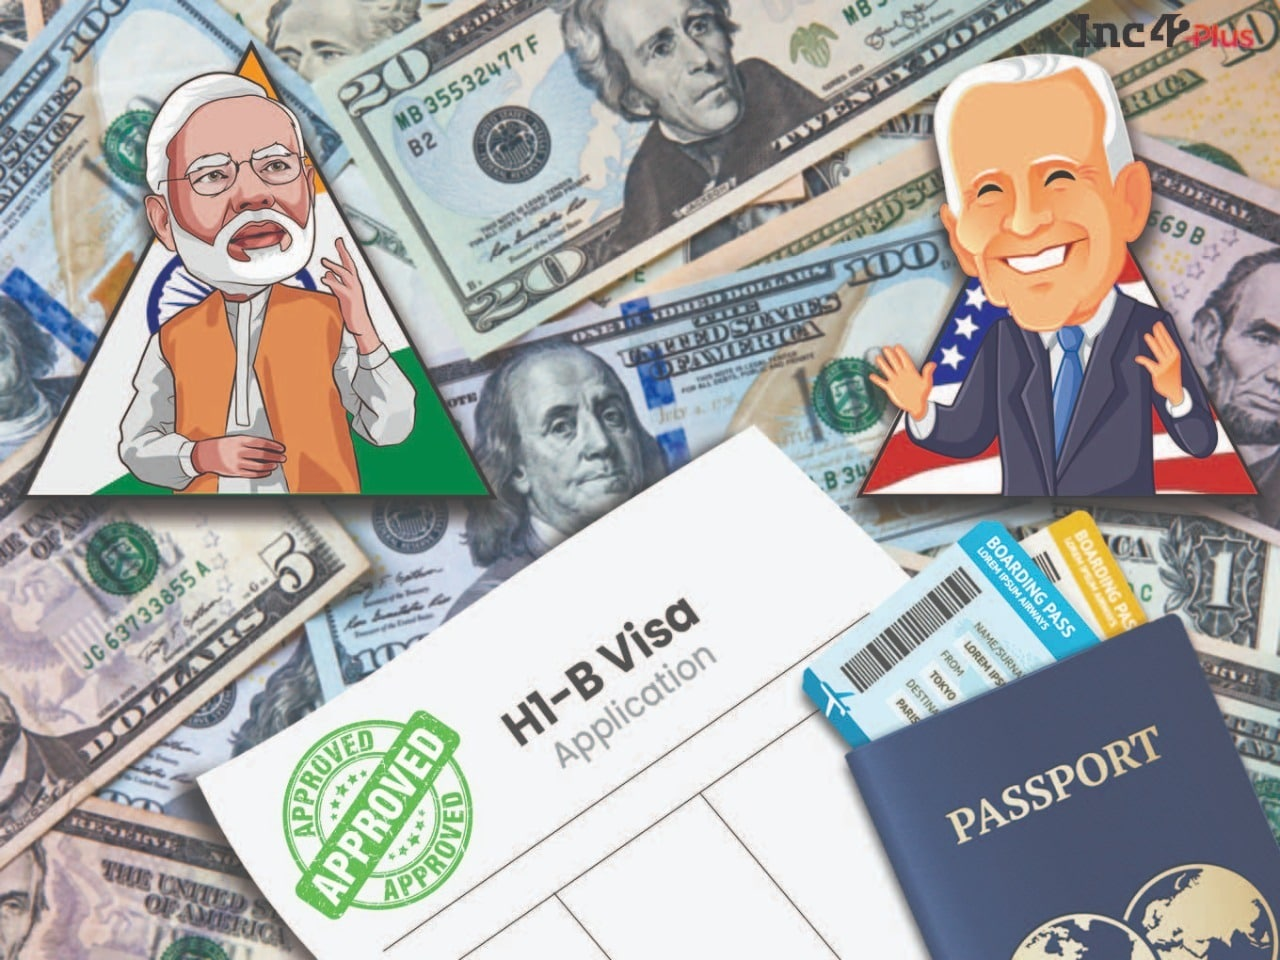 [The Outline By Inc42 Plus] Biden Win & The Indian Tech Story